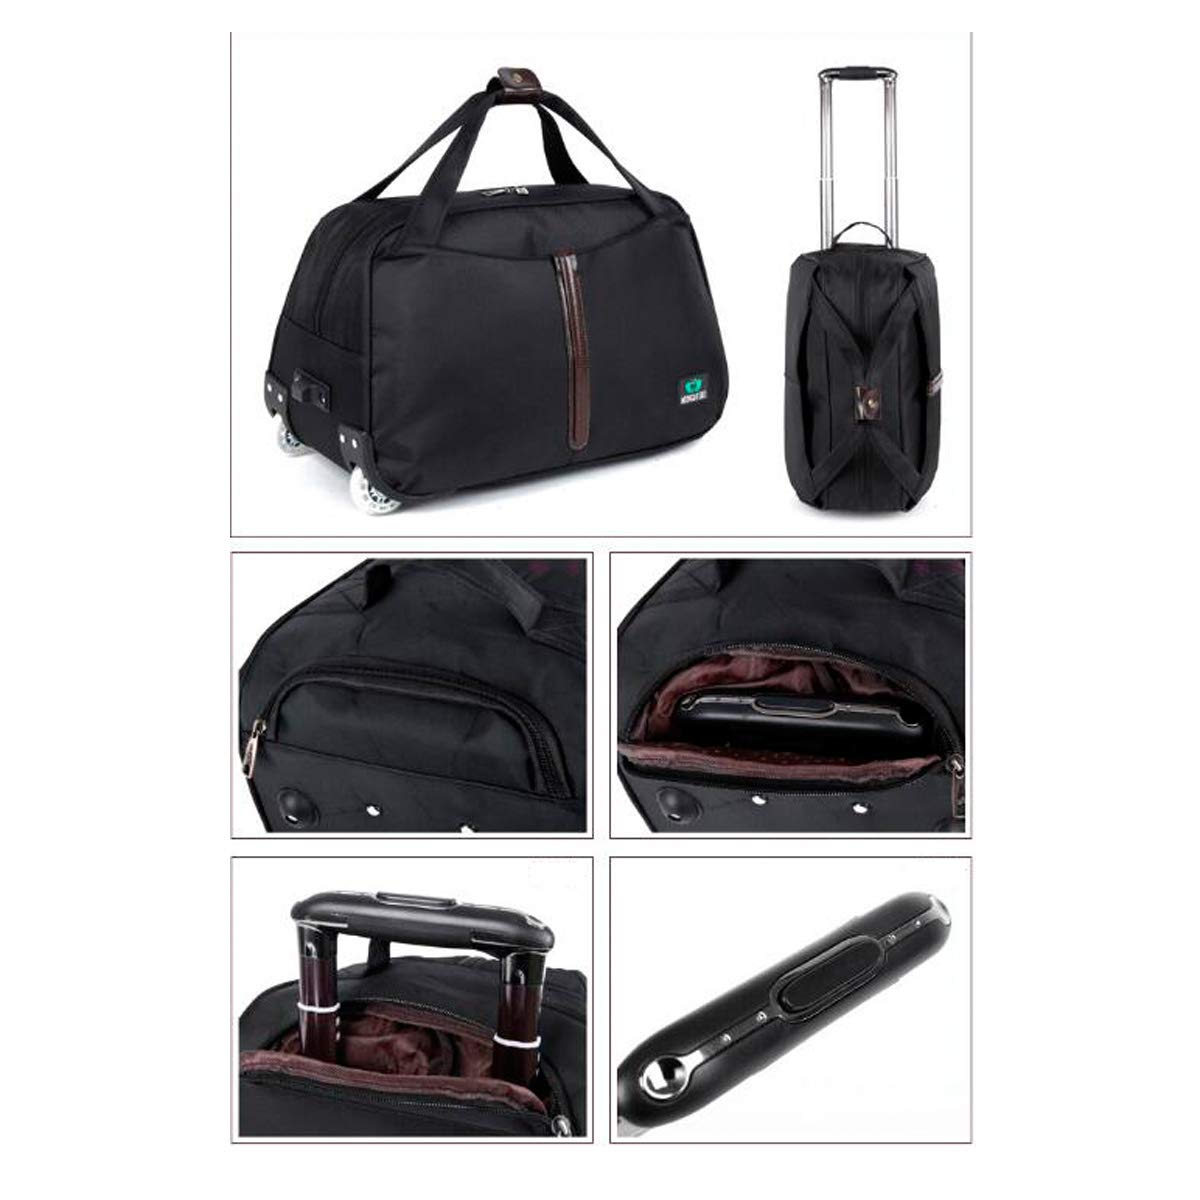 Suitcase,Handbag Soft Bag Simple 20 Inches The Latest Style Color : Black, Size : 24 Travel Storage Bag Huijunwenti Trolley Case